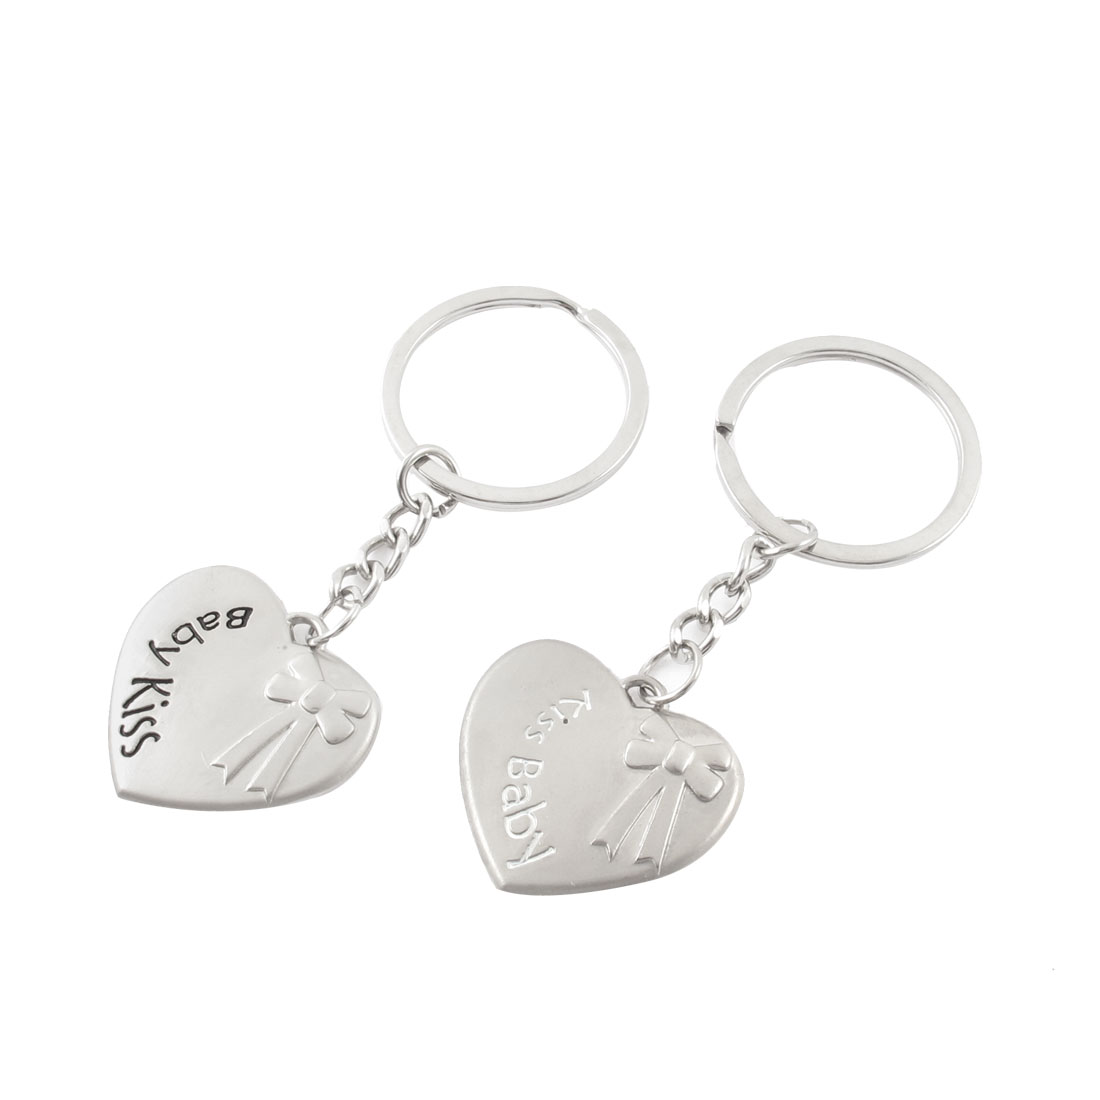 2 Pcs Heart Shape Bowknot Carved Dangling Pendant Split Ring Keychain Keyring